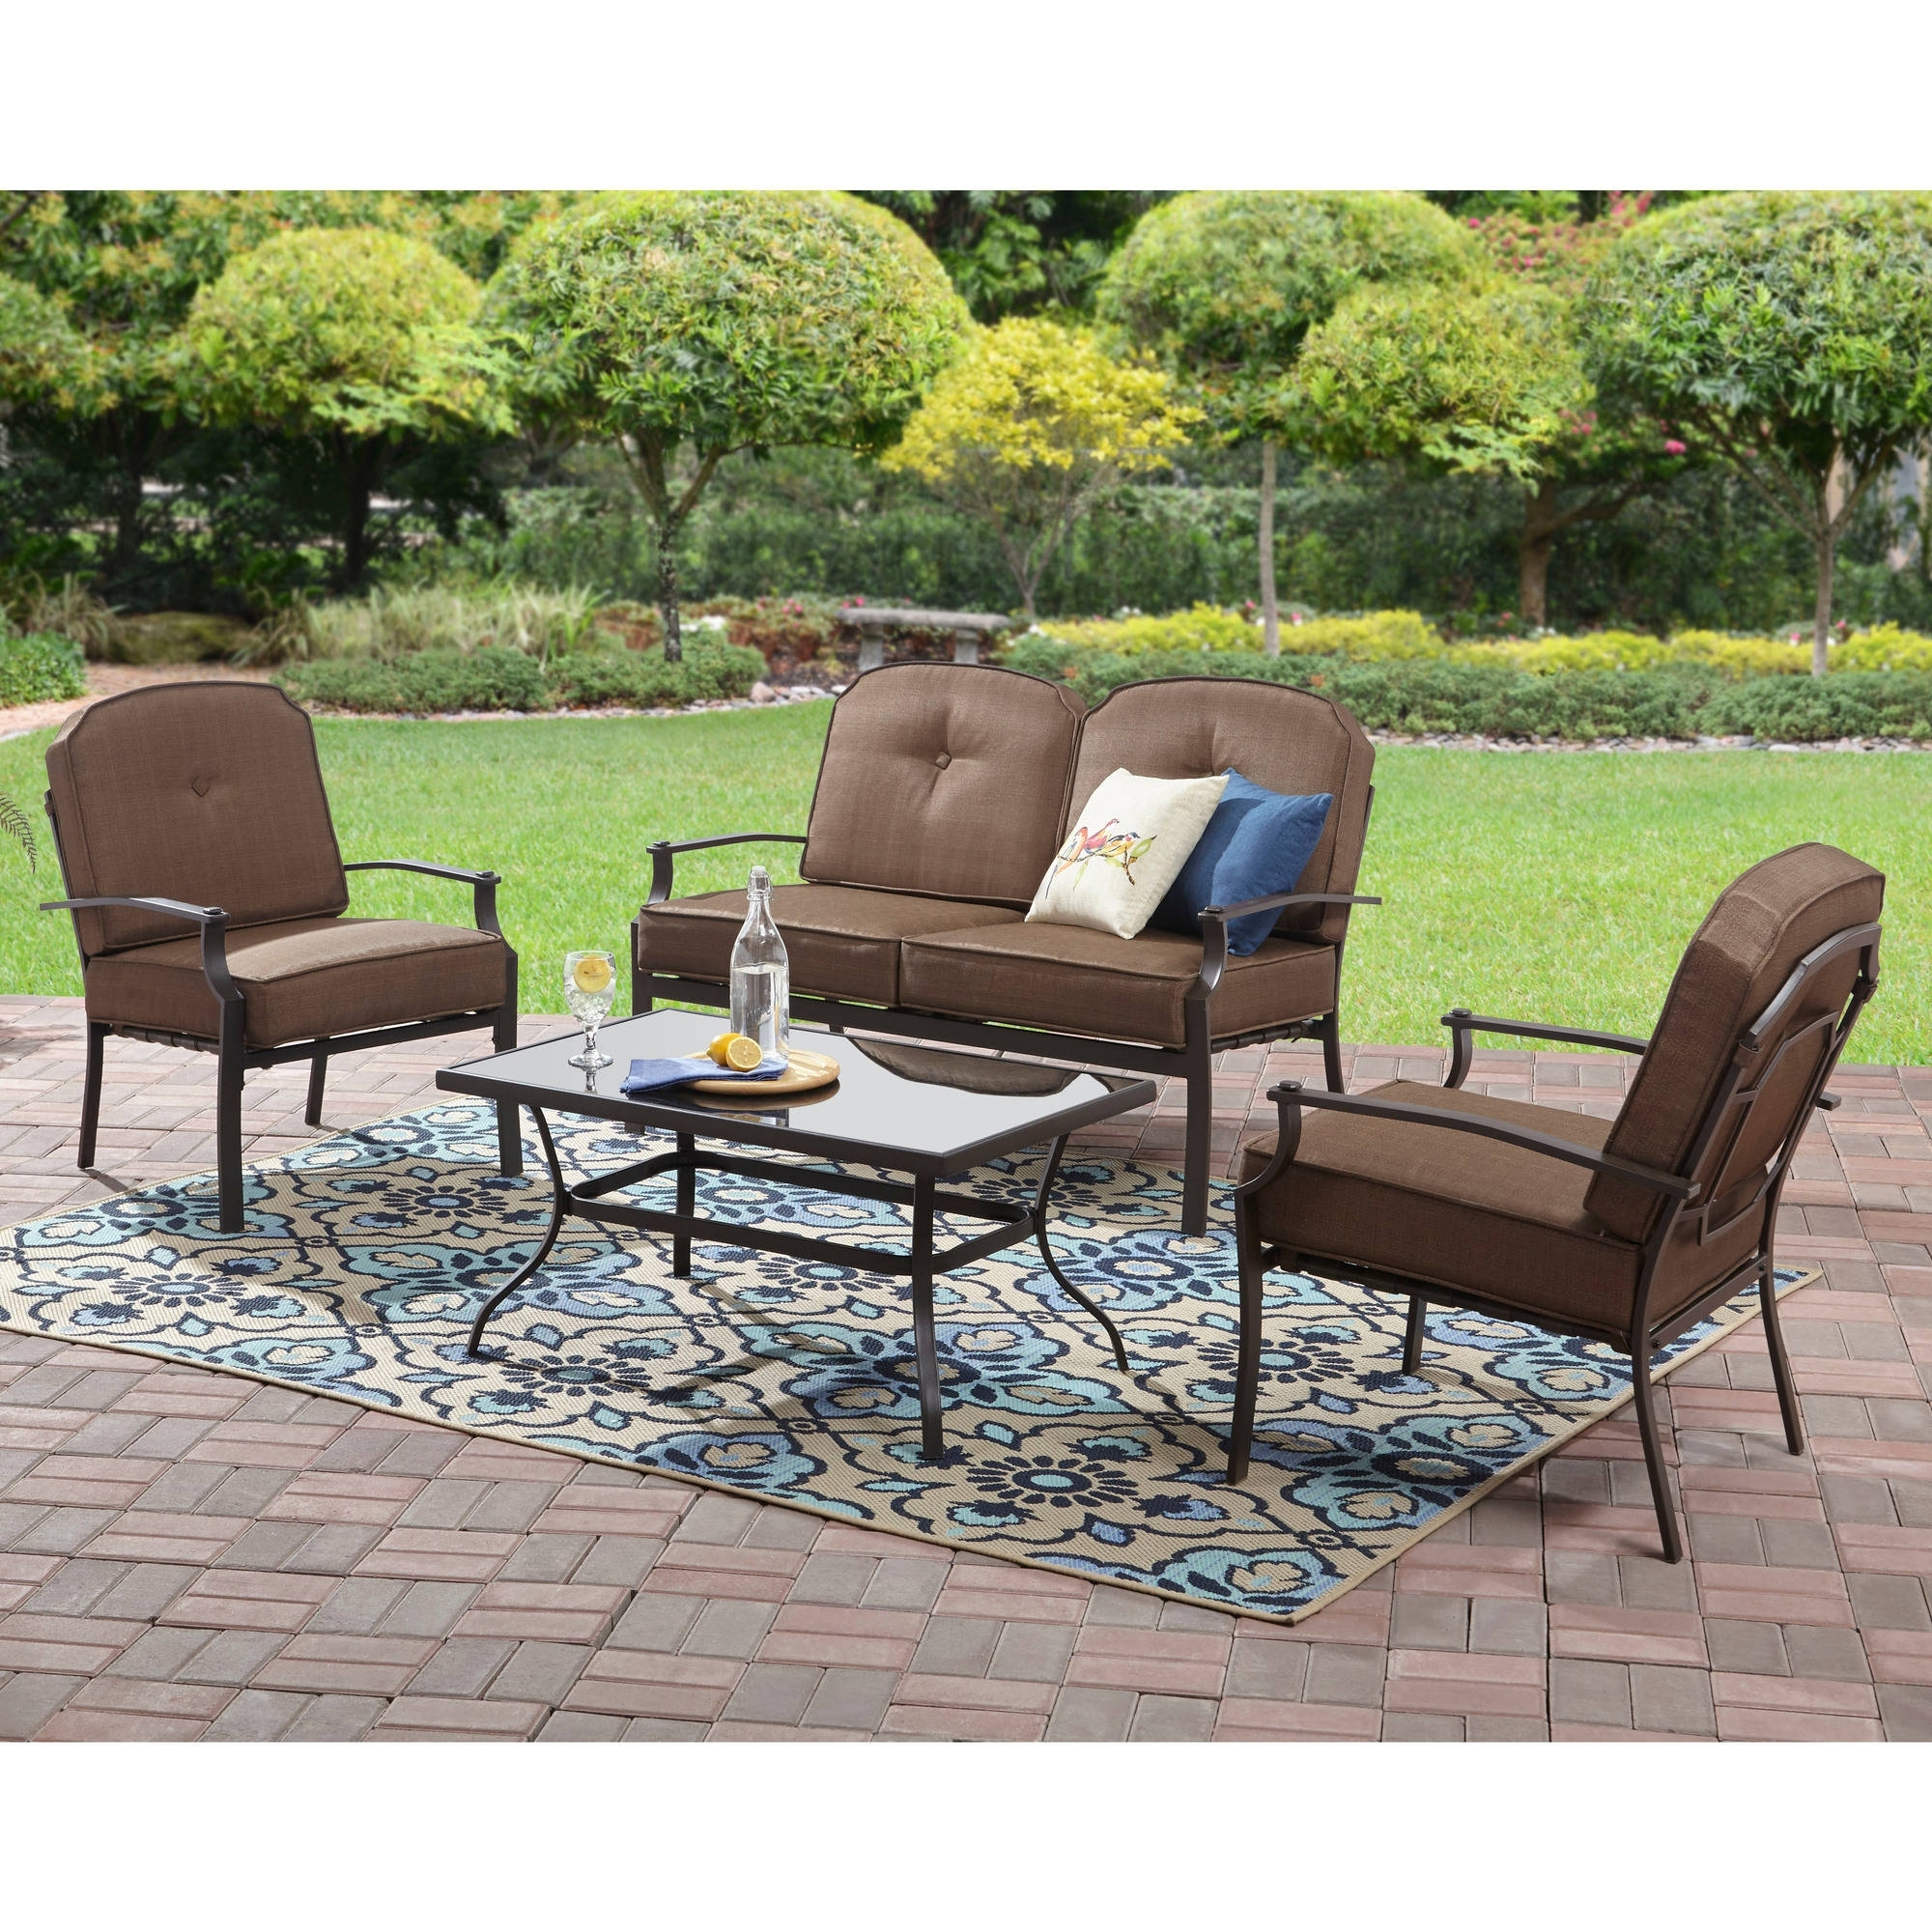 Dot Patio Conversation Sets Pertaining To Favorite Mainstays Spring Creek 5 Piece Patio Dining Set, Seats 4 – Walmart (Gallery 2 of 20)